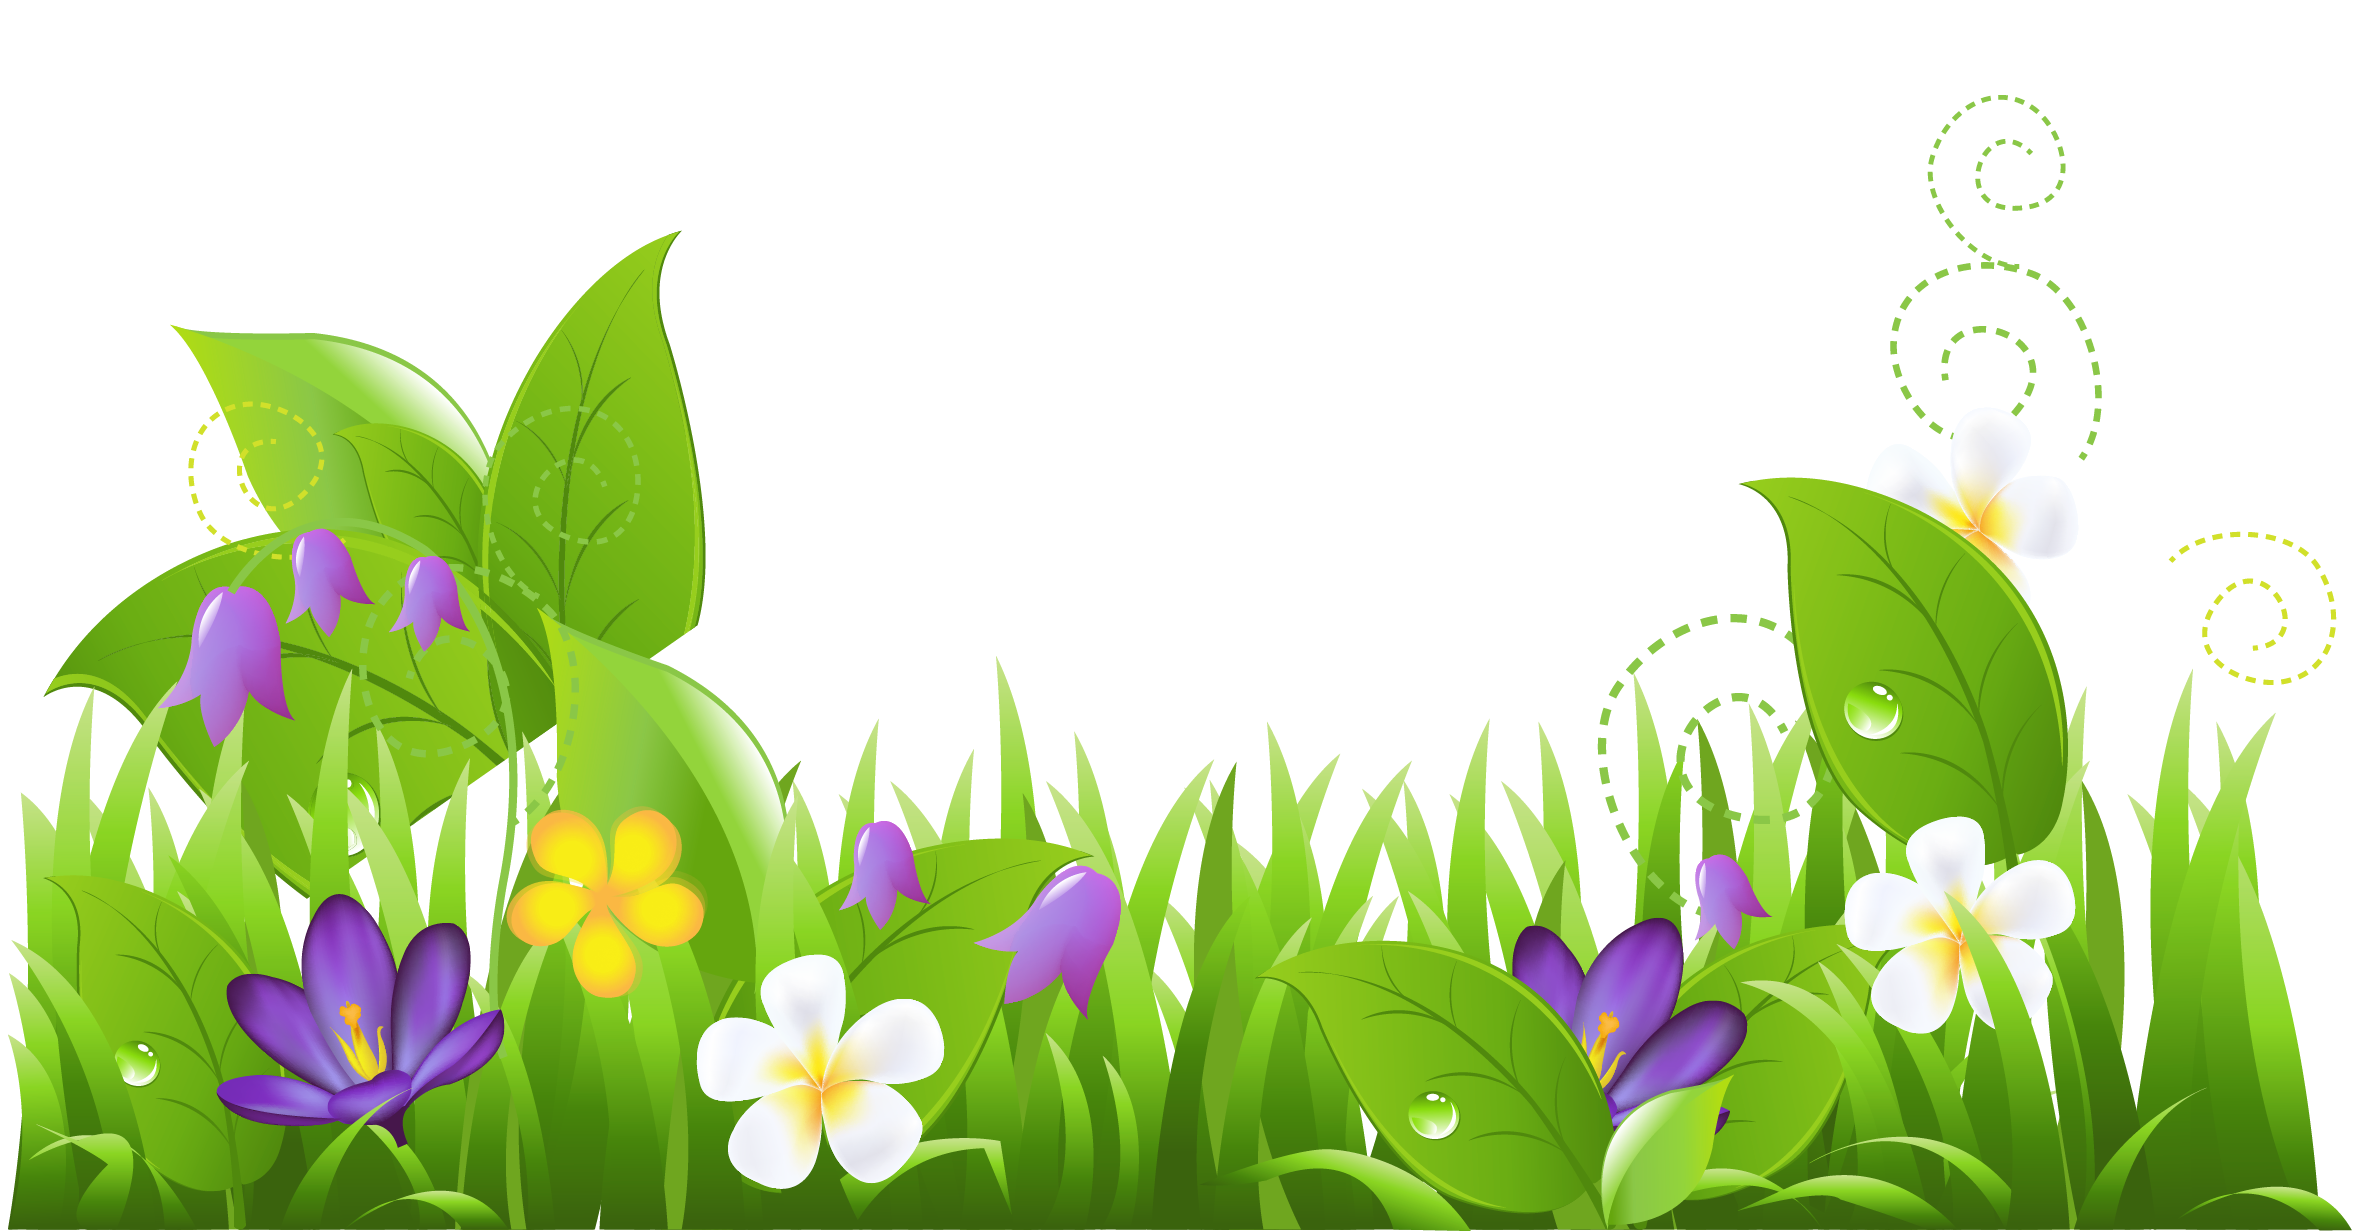 Sky and grass clipart 2